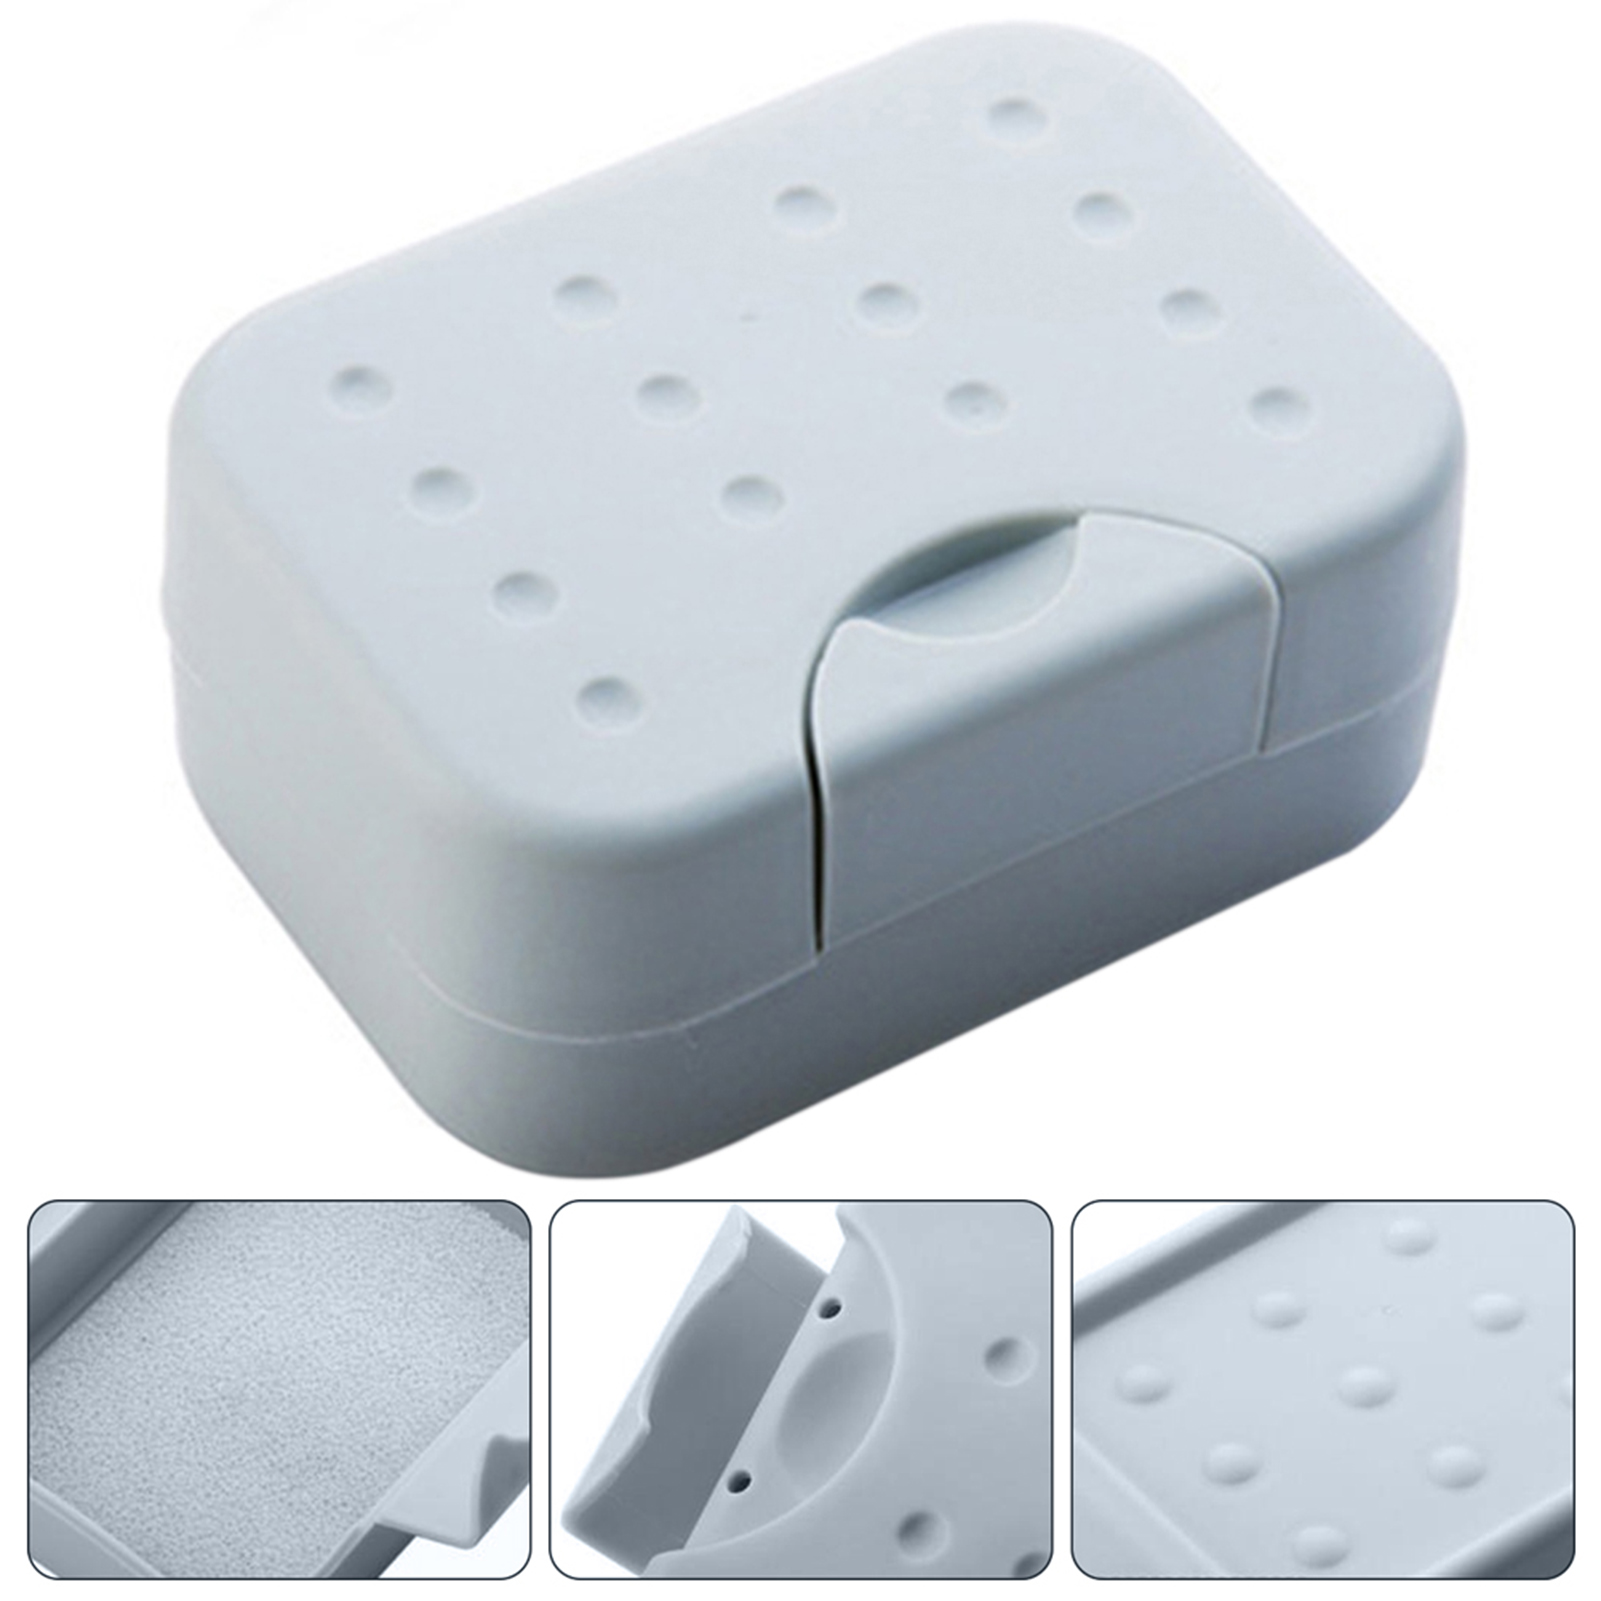 Dual Purpose Travel Portable Waterproof Seal up Soap Case Box Holder Container